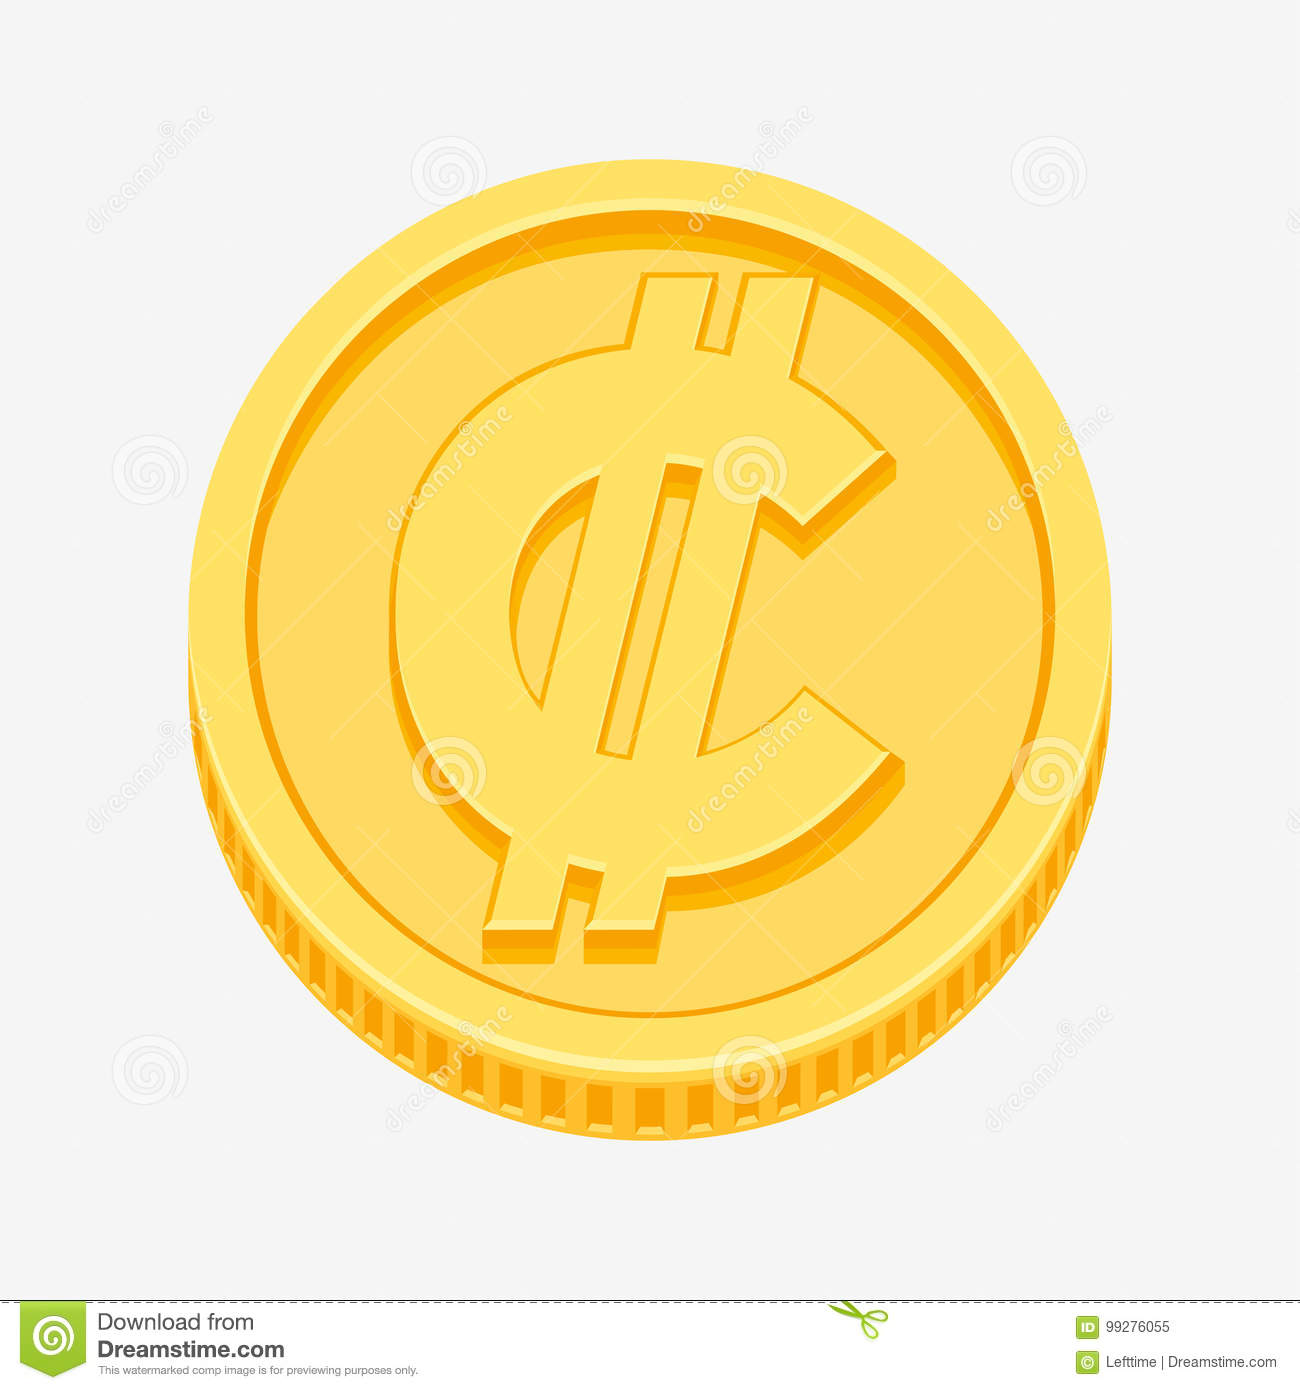 Colon Currency Symbol On Gold Coin Stock Vector Illustration Of